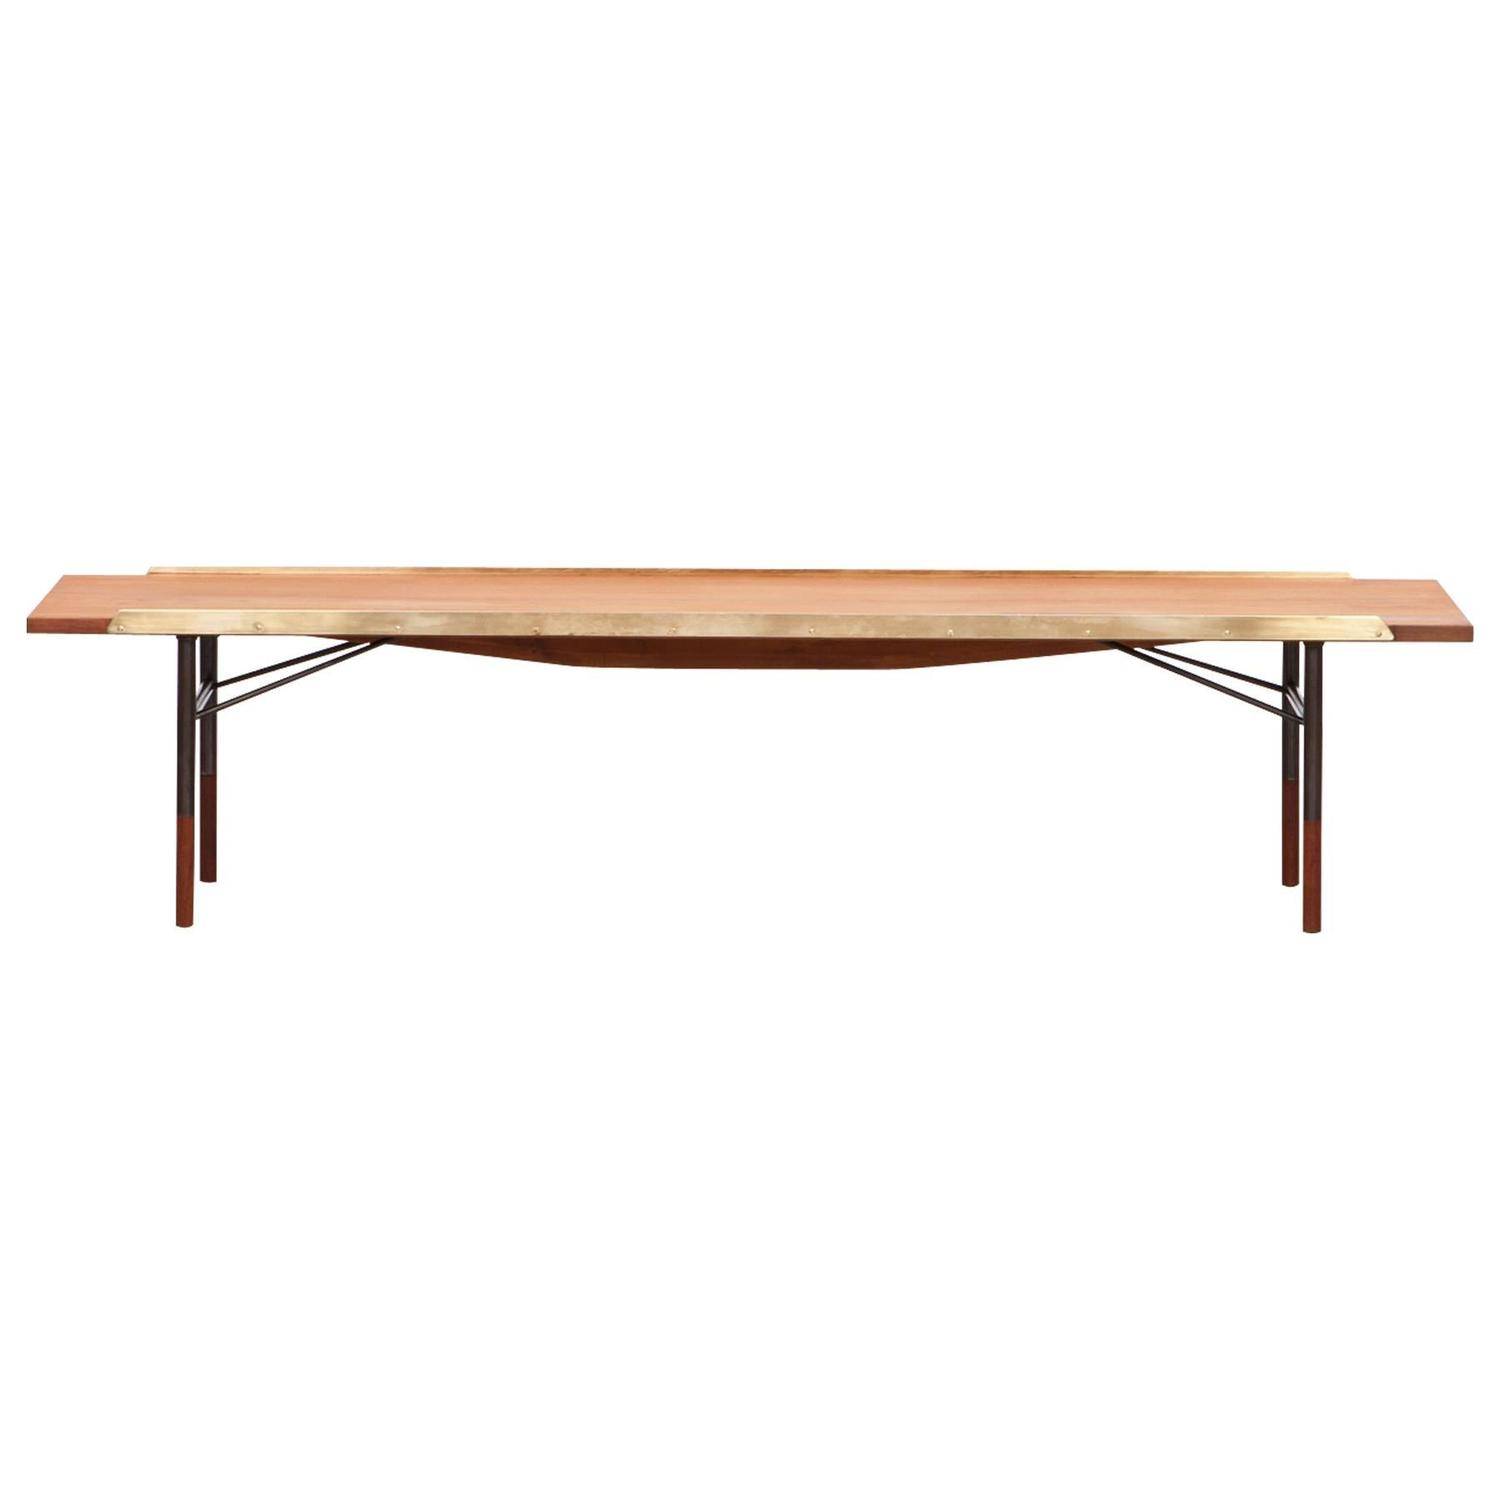 Finn Juhl Coffee Table or Bench For Sale at 1stdibs